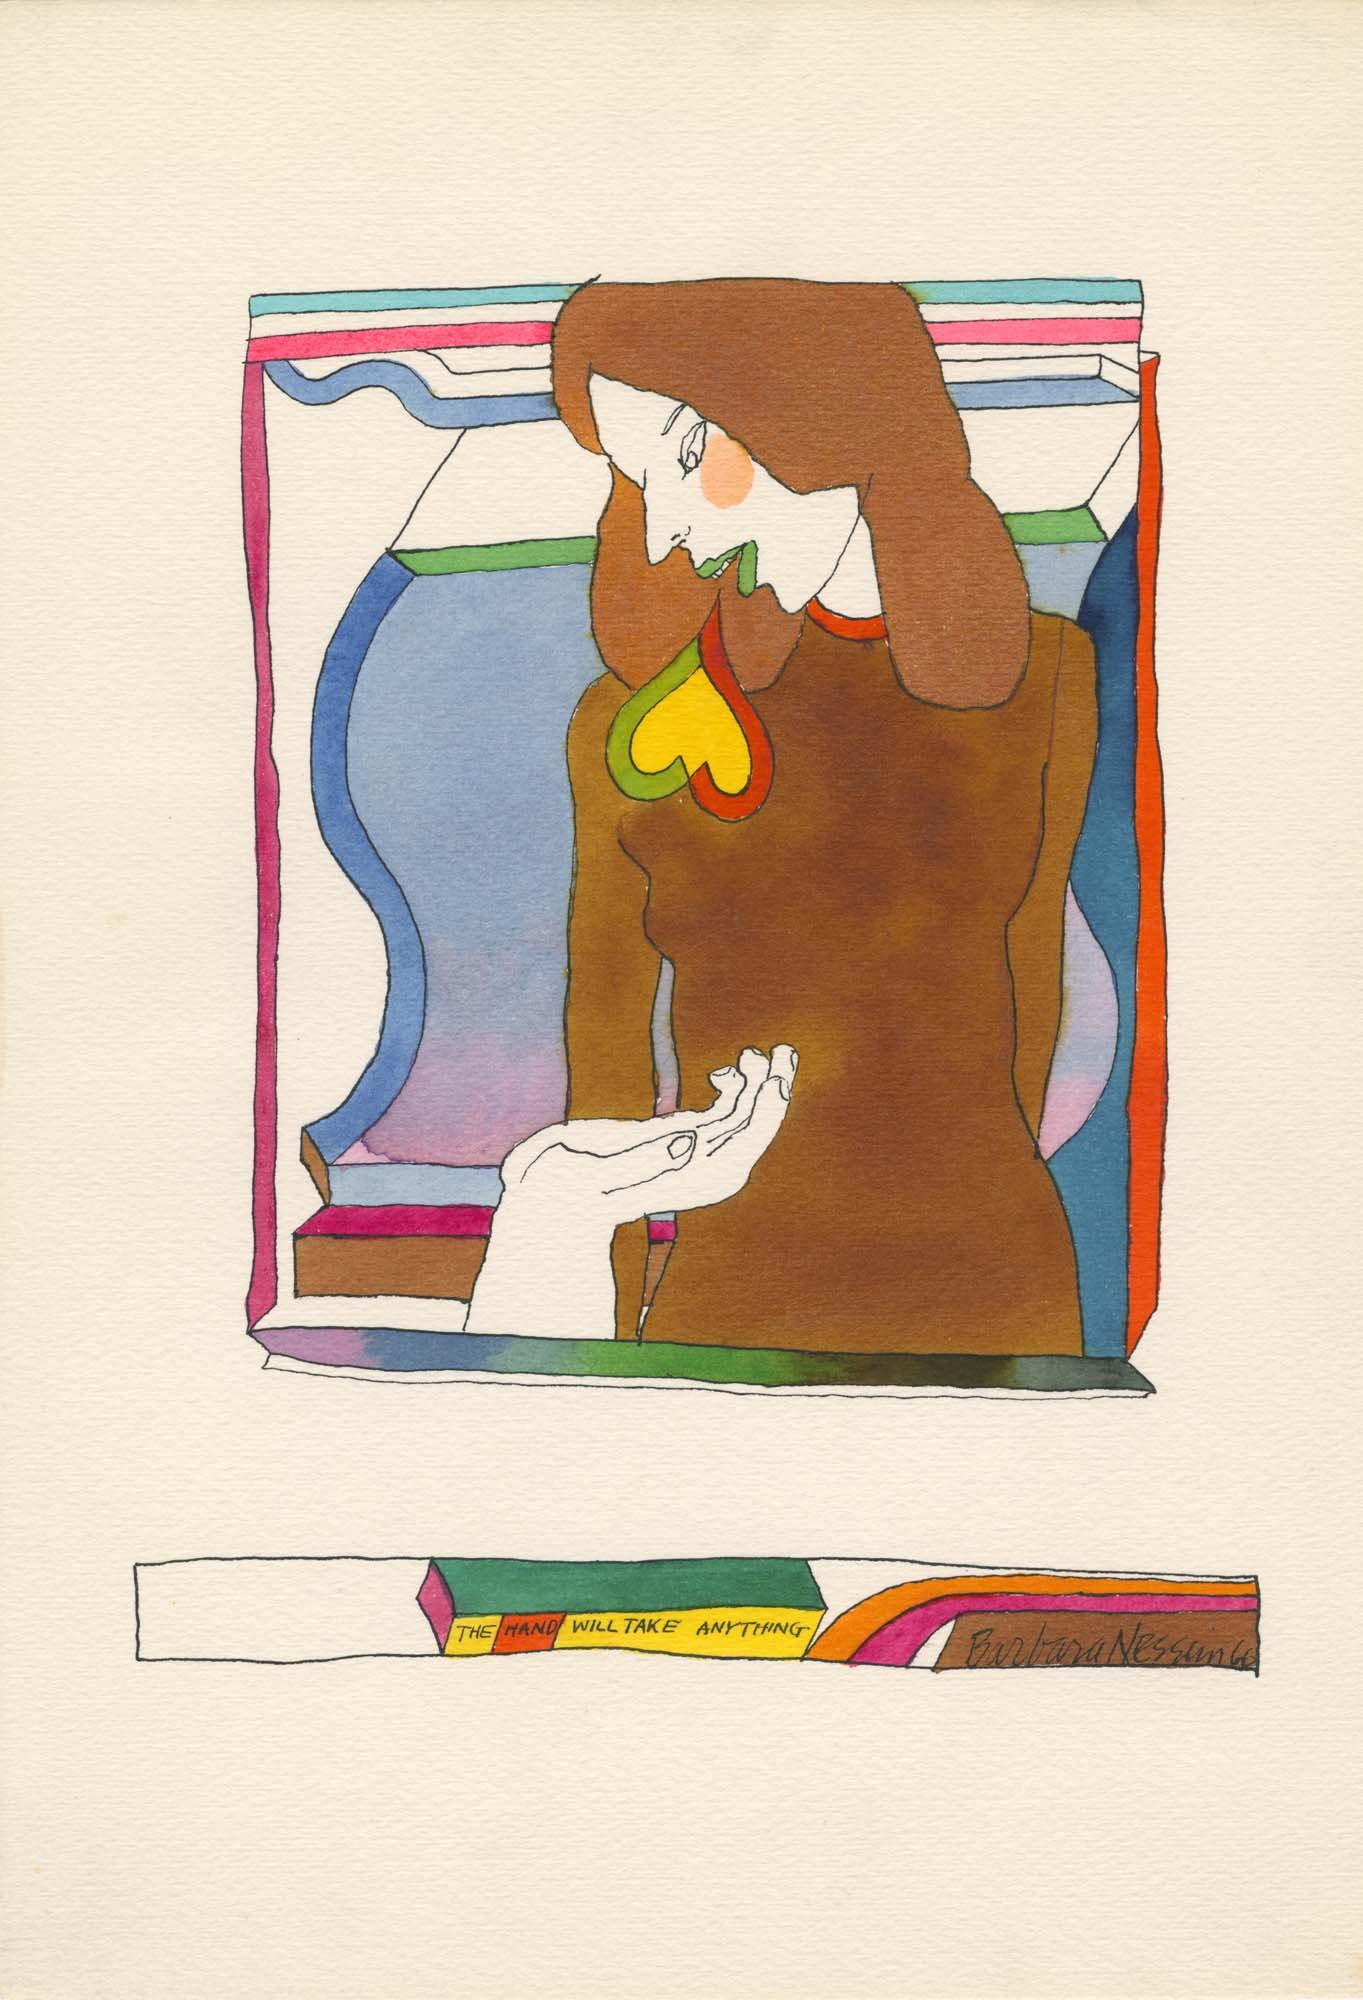 <i>This Hand will Take Anything</i>, 1966